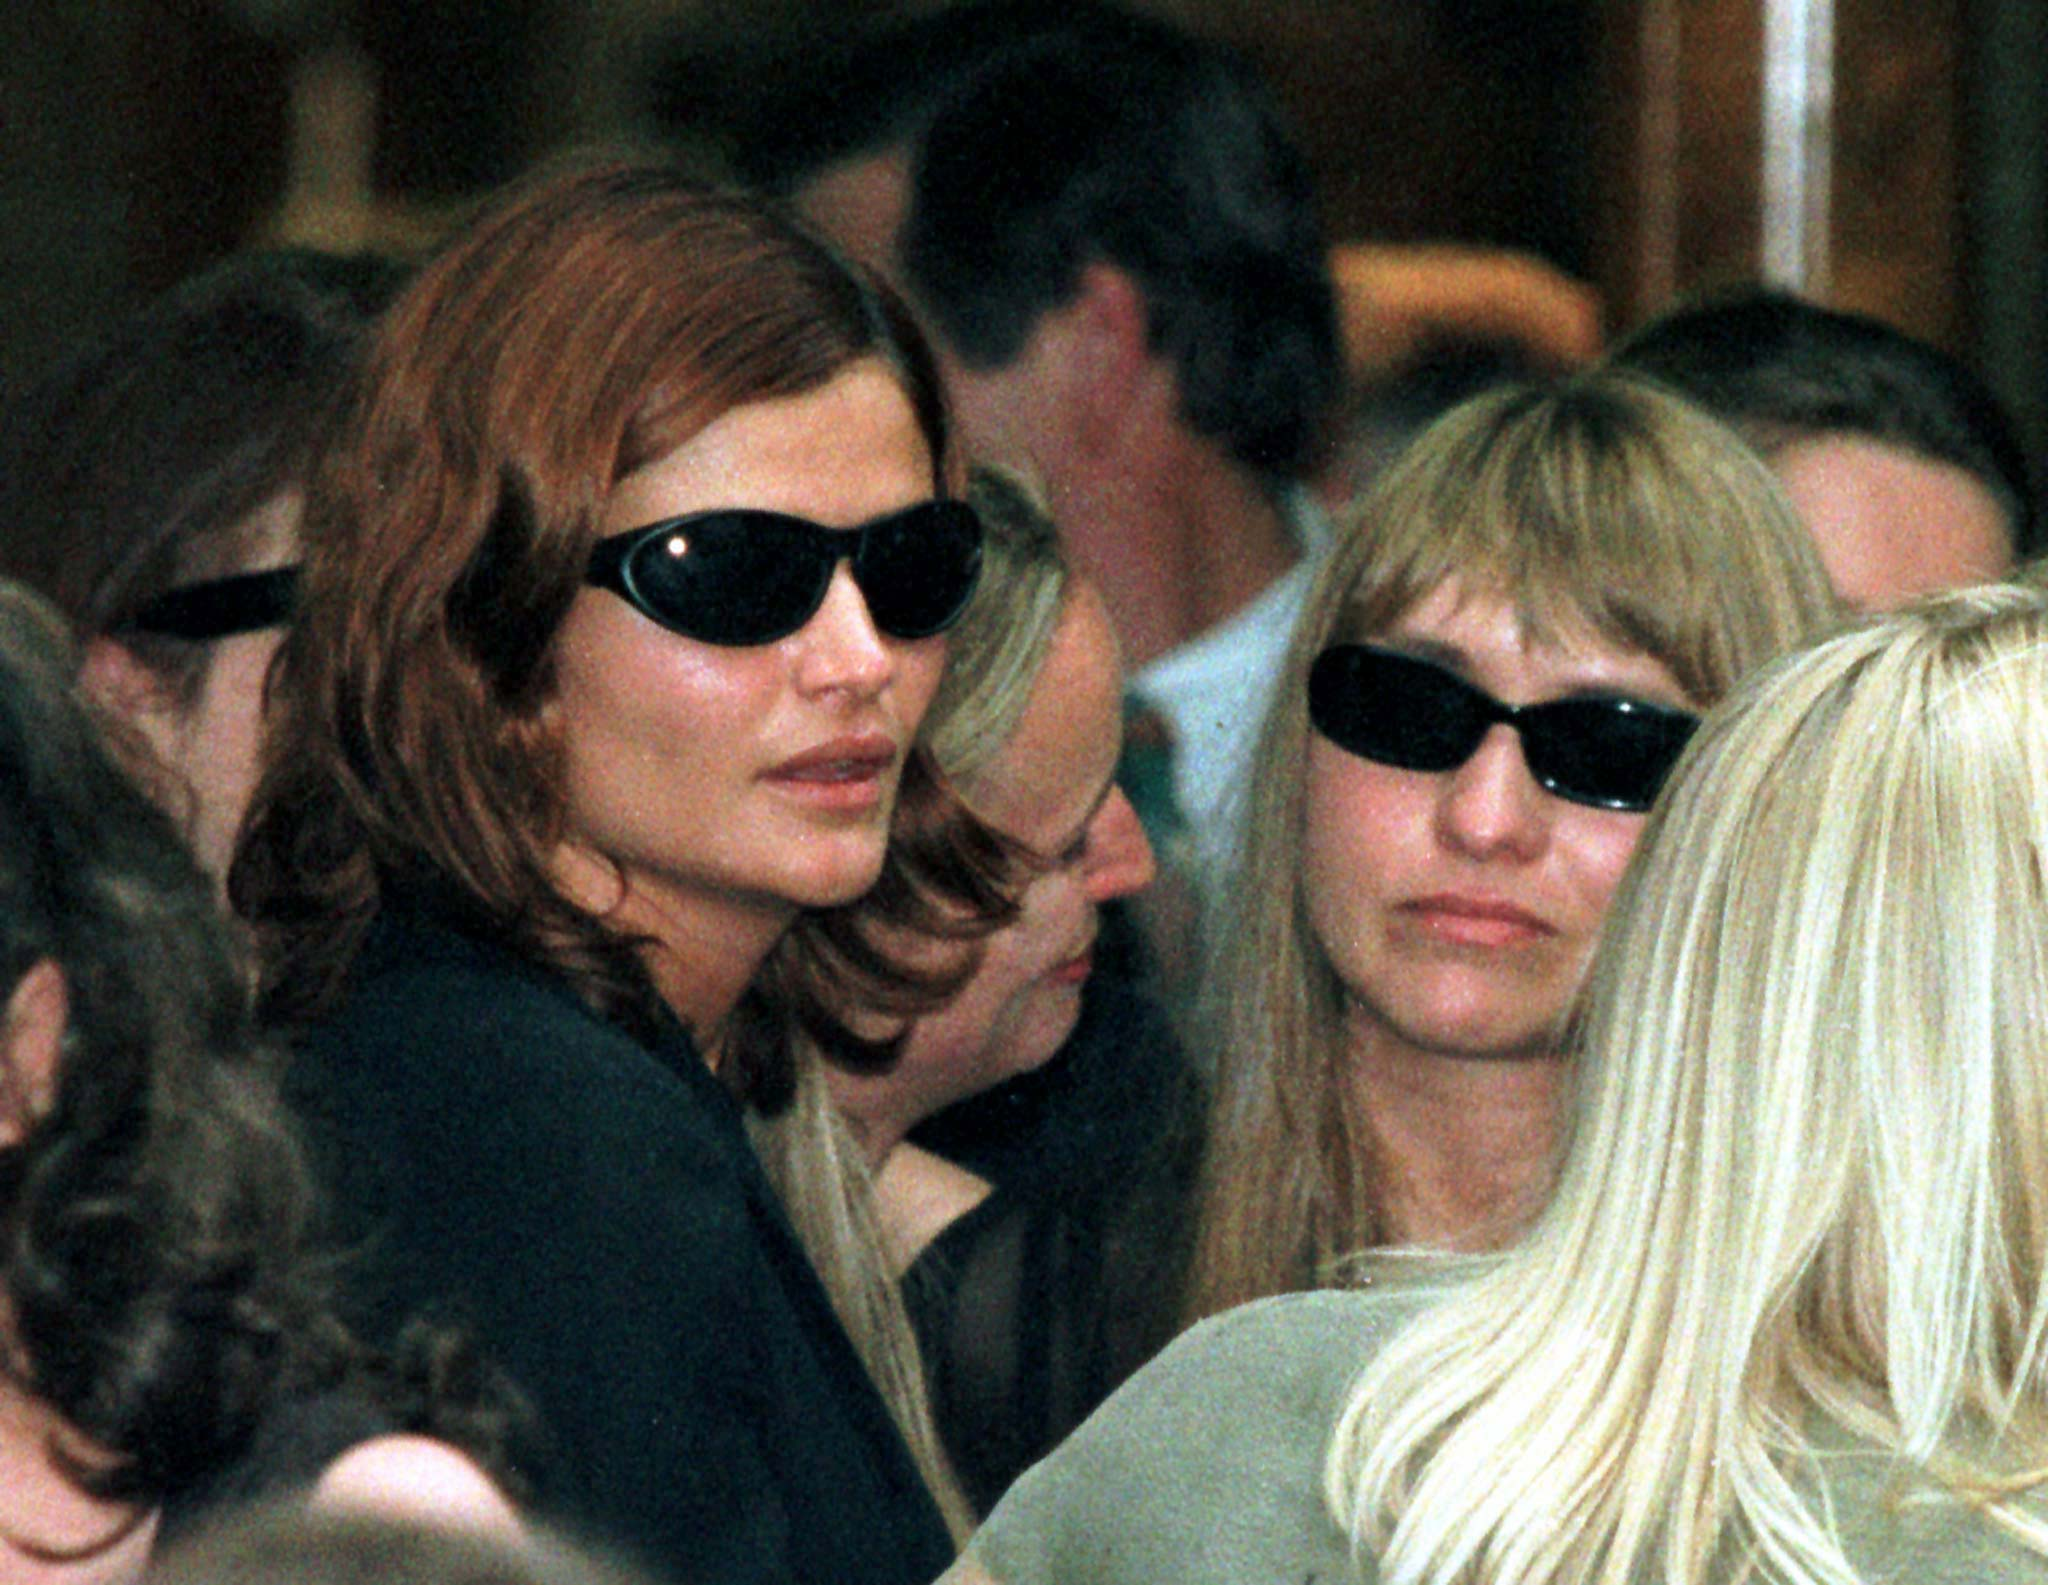 Supermodel Helena Christensen (L) is pictured with an unidentified friend after the funeral of Australian rock star Michael Hutchence at Sydney's main Anglican Church November 27. Thousands of fans watched the emotional service outside on large video screens while relatives and friends crowded inside. Hutchence was found dead in his Sydney hotel room November 22.    ? QUALITY DOCUMENT - PBEAHUMRCBA